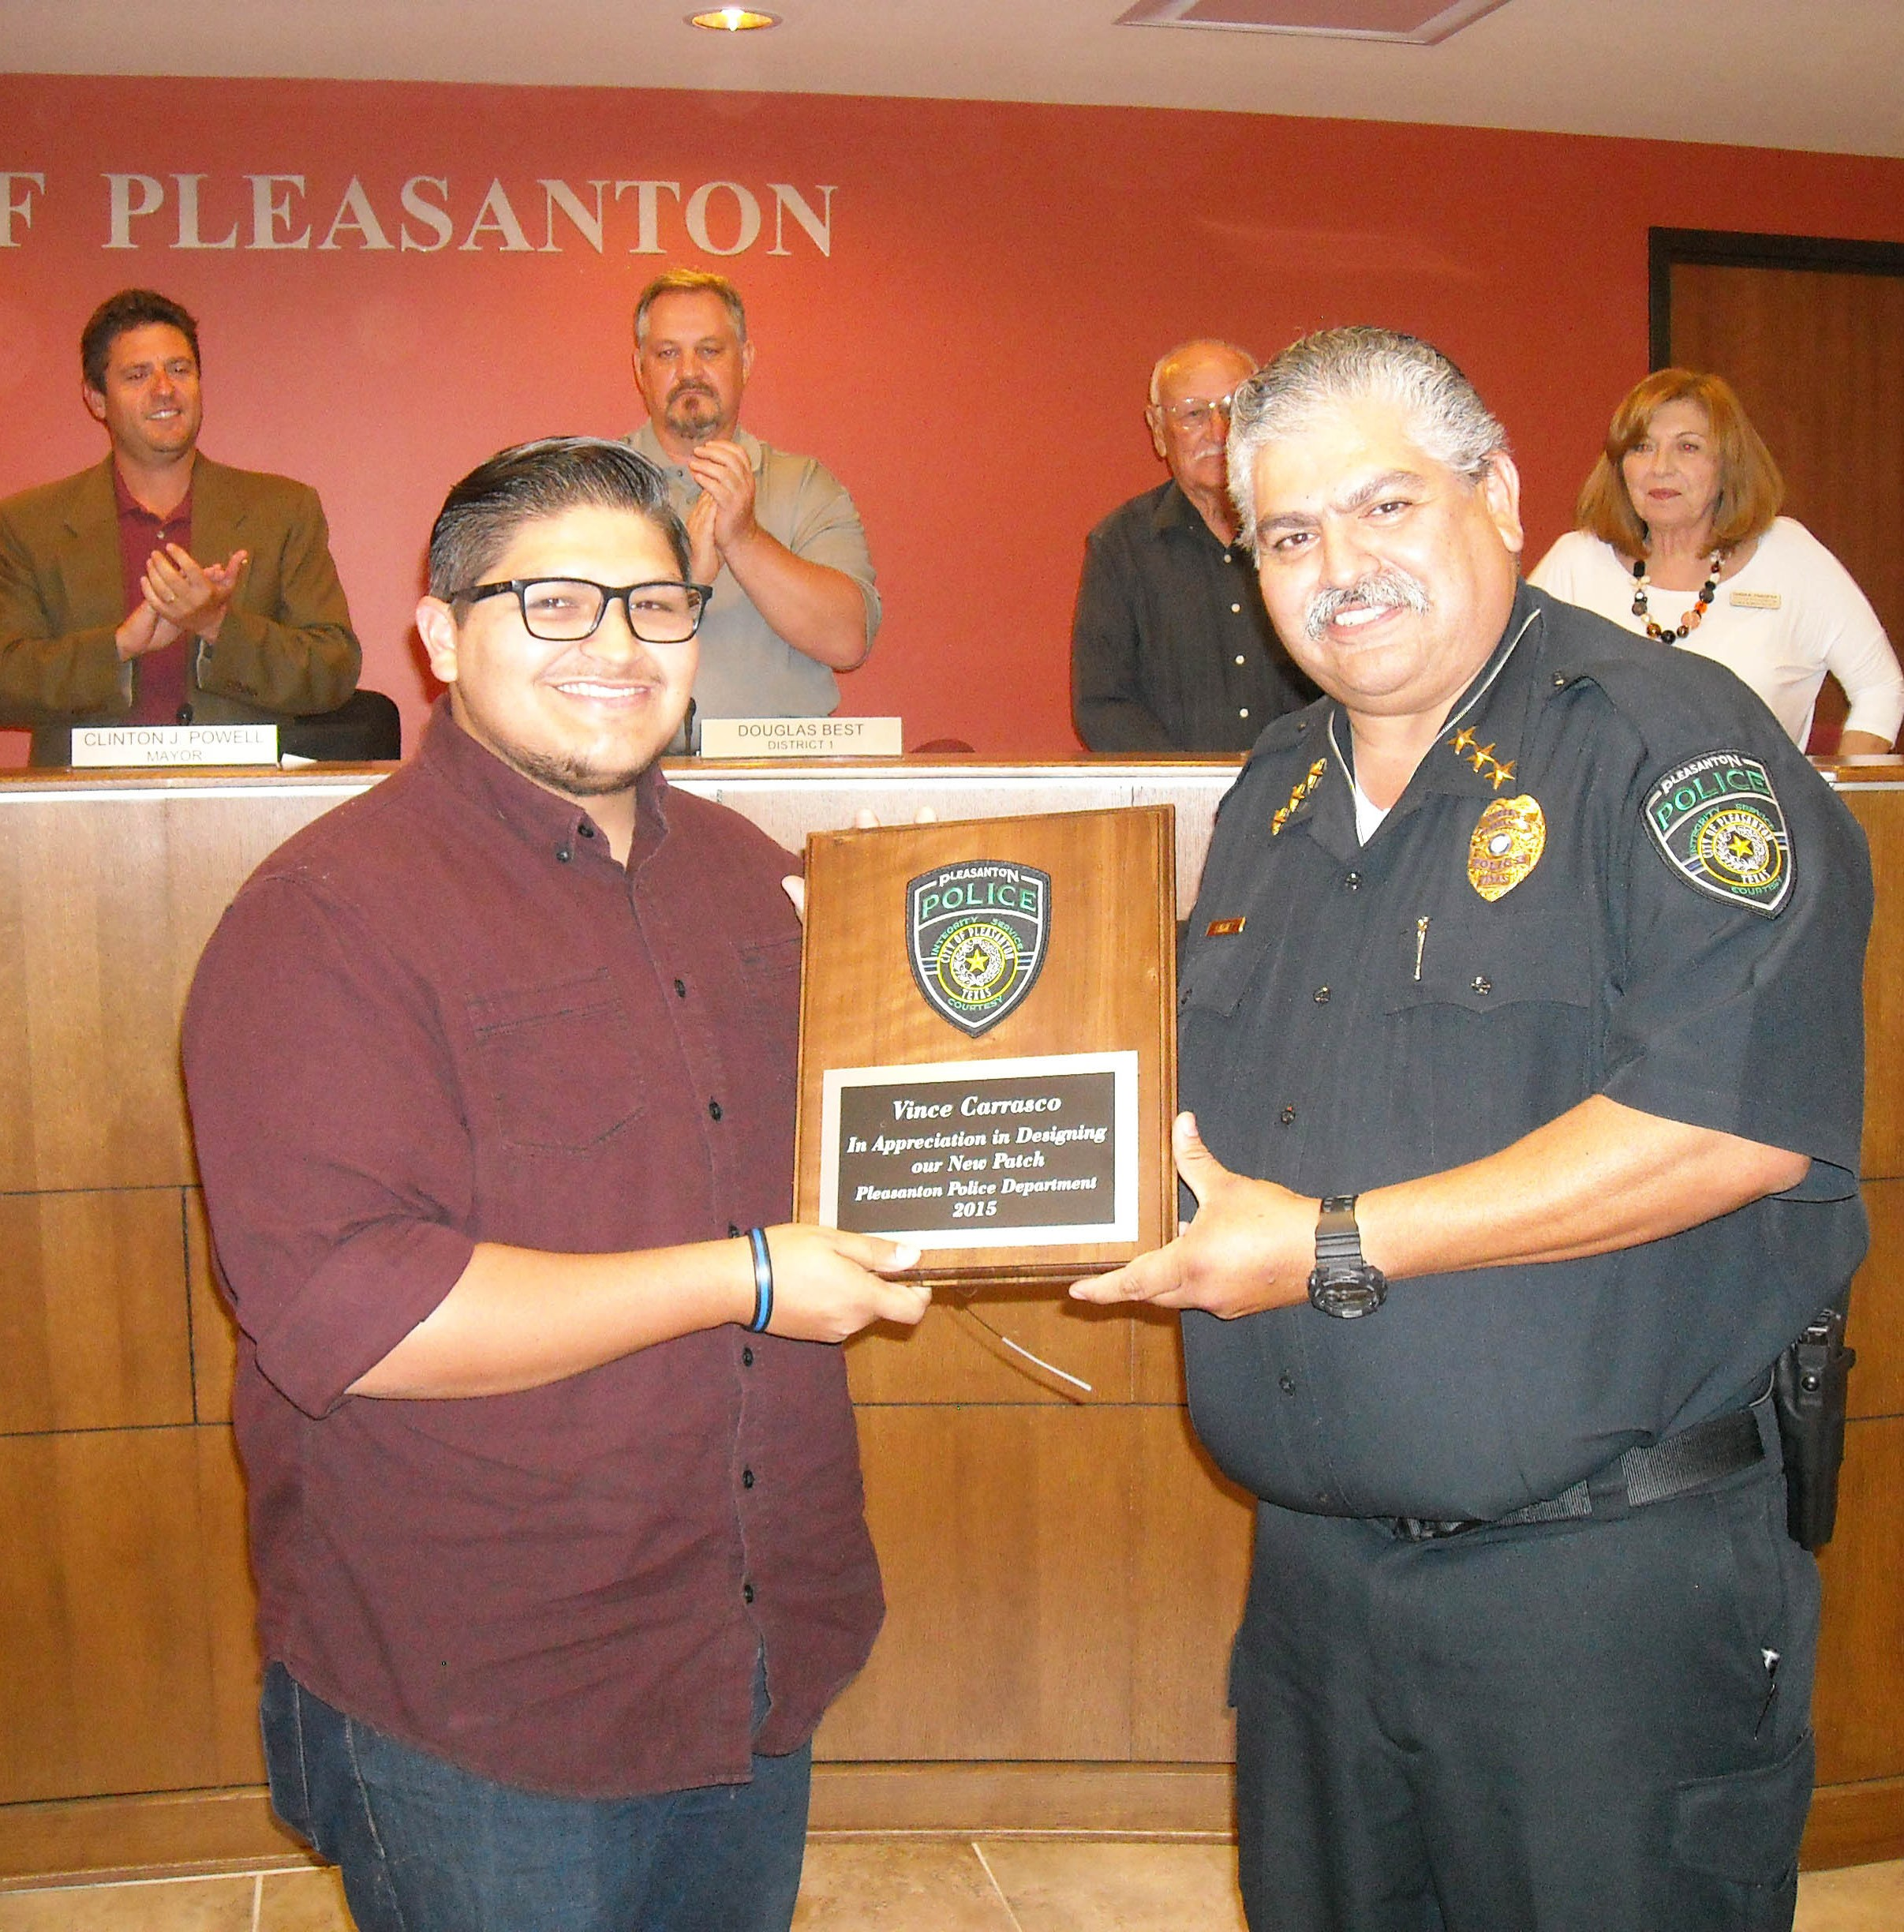 Vince Carrasco (left), son-in-law of Pleasanton Police Chief Ronald Sanchez (right), donated his time and talent and designed a new patch for the Pleasanton Police Department. He received a plaque of appreciation, embellished with his finished design during the August 6 Pleasanton City Council meeting.